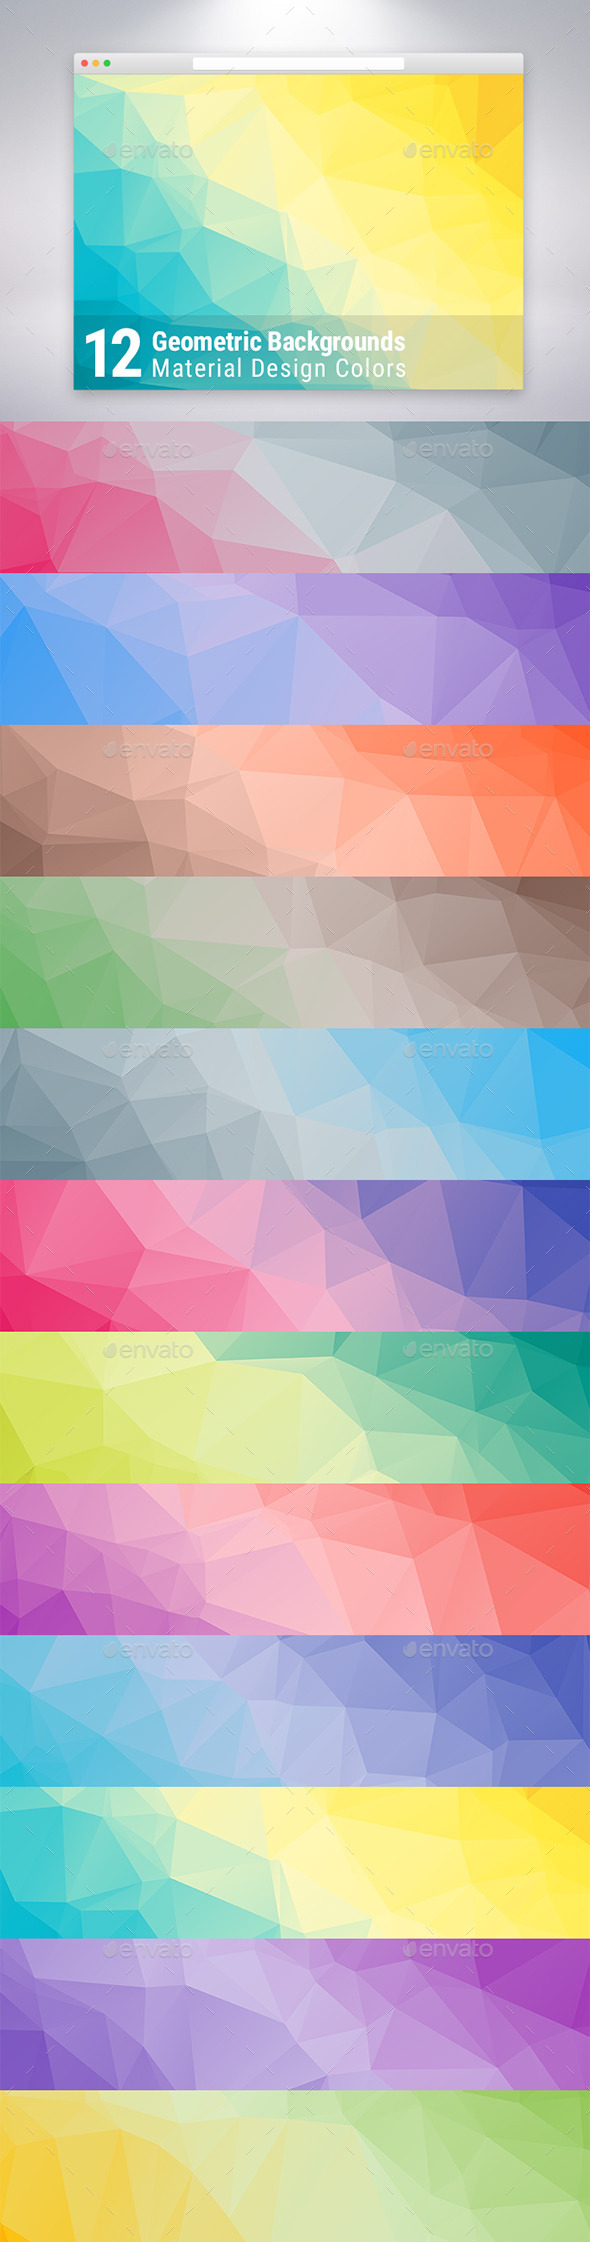 Material Design Geometric Backgrounds x12 - Abstract Backgrounds